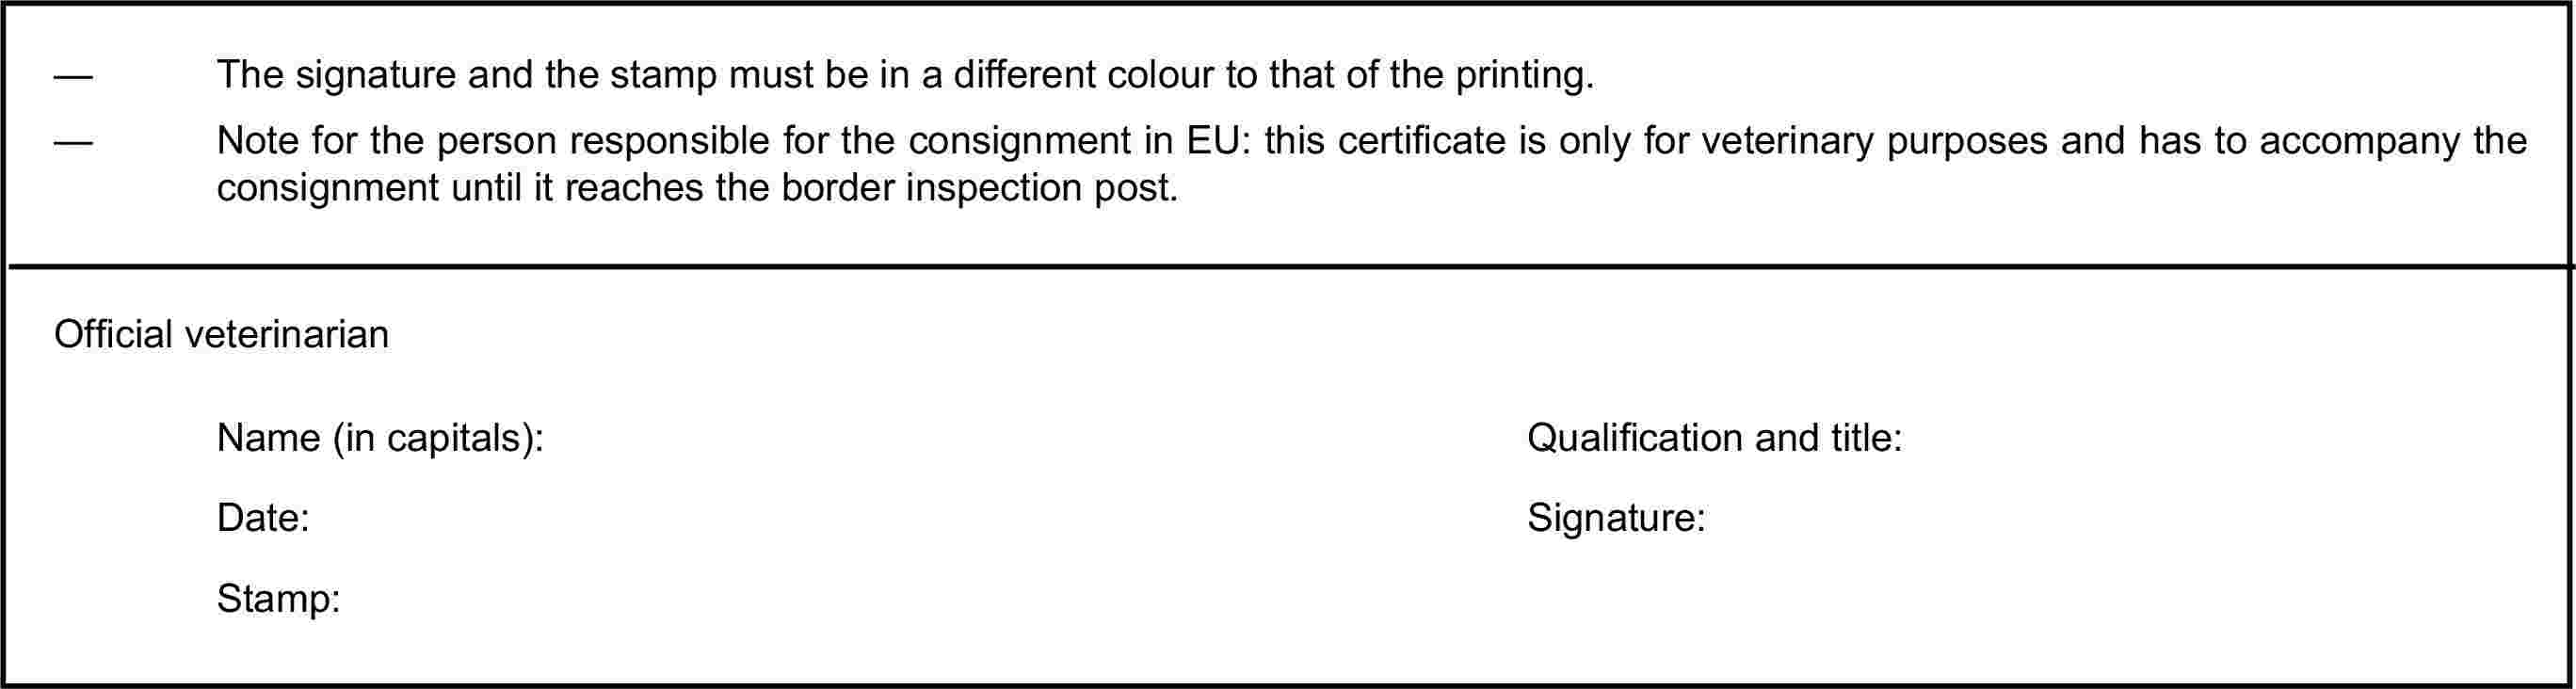 — The signature and the stamp must be in a different colour to that of the printing.— Note for the person responsible for the consignment in EU: this certificate is only for veterinary purposes and has to accompany the consignment until it reaches the border inspection post.Official veterinarianName (in capitals):Qualification and title:Date:Signature:Stamp: